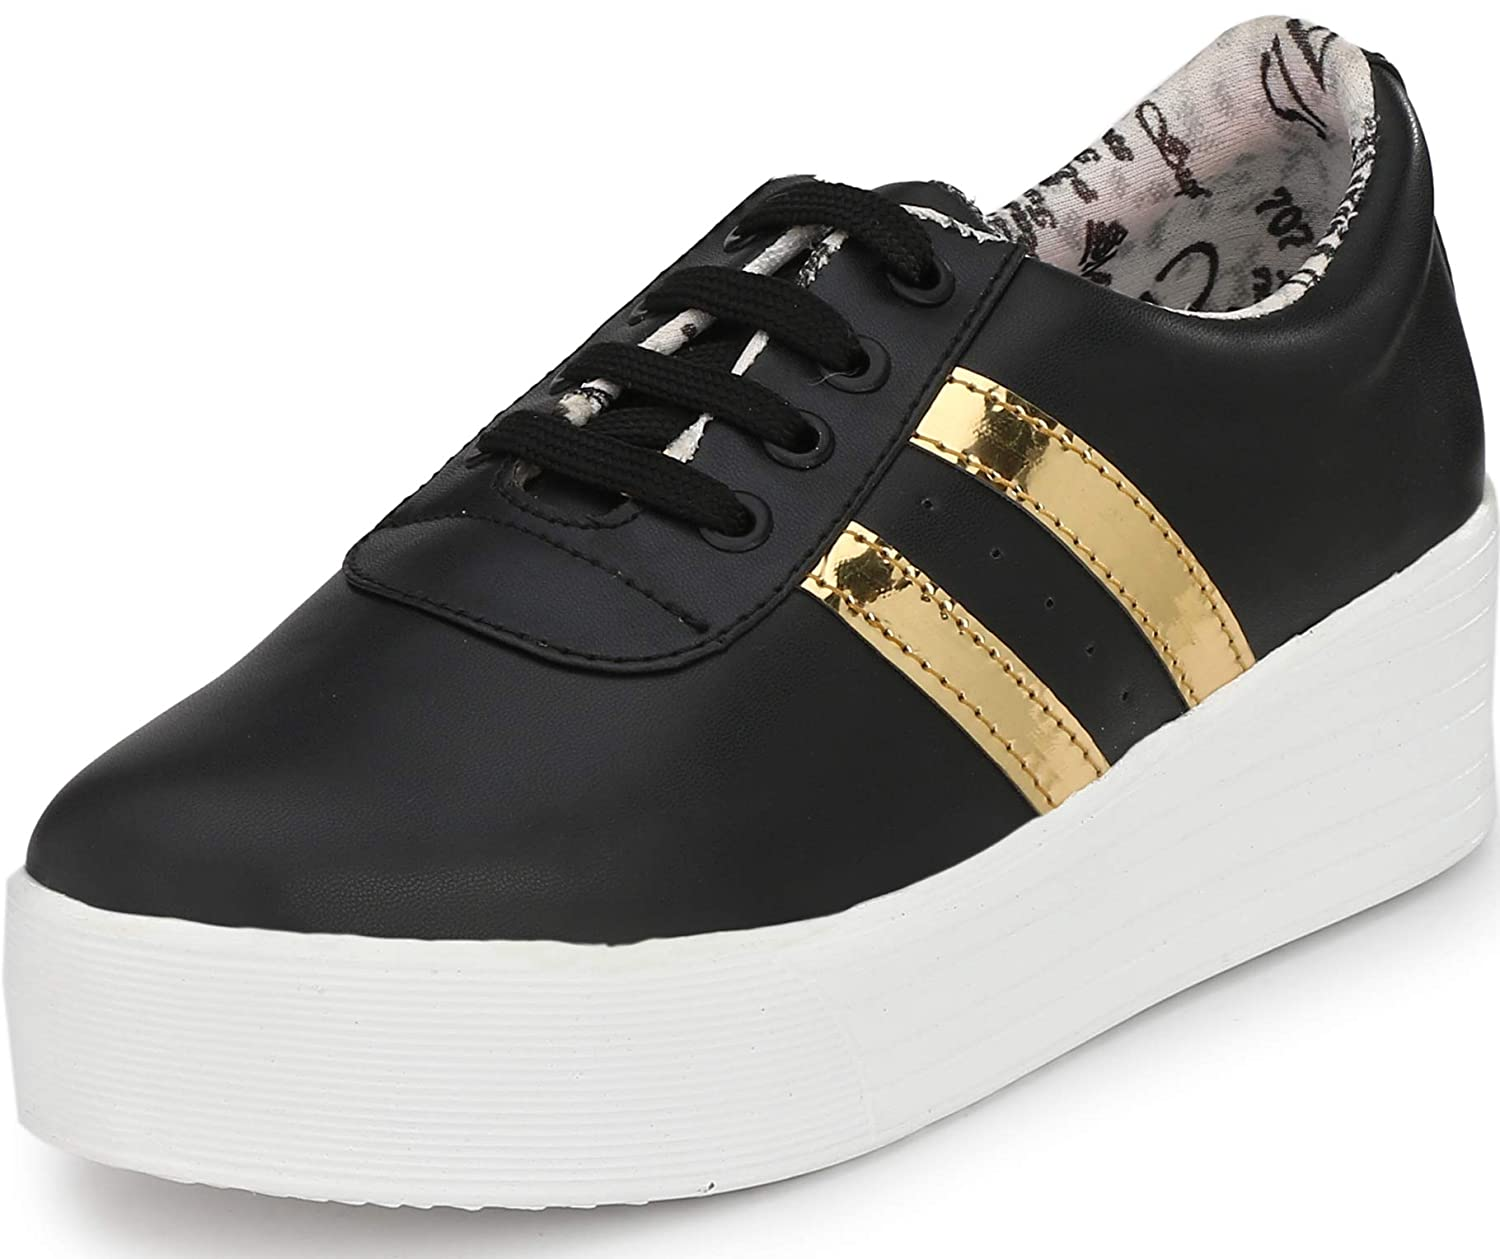 5abbcaa097ff11 Flooristo Casual Black Gold High Sole Sneakers Shoes for Women/Girls: Buy  Online at Low Prices in India - Amazon.in